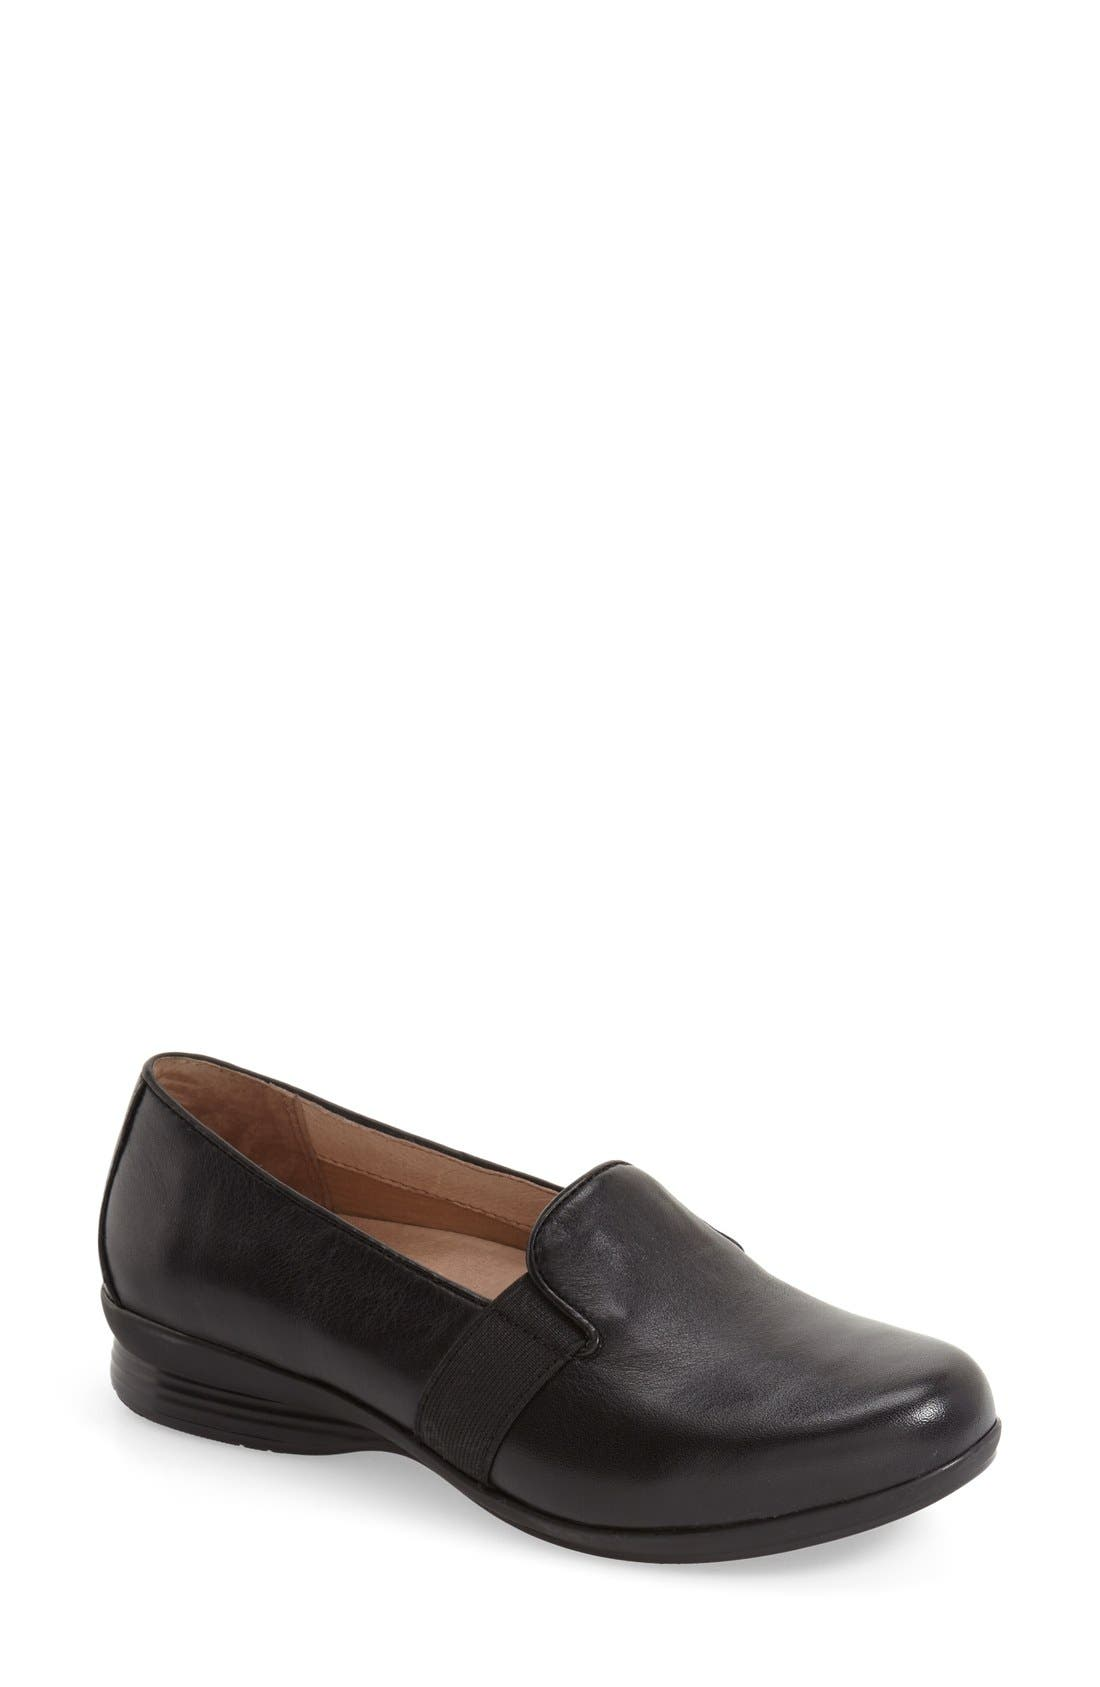 DANSKO 'Addy' Loafer